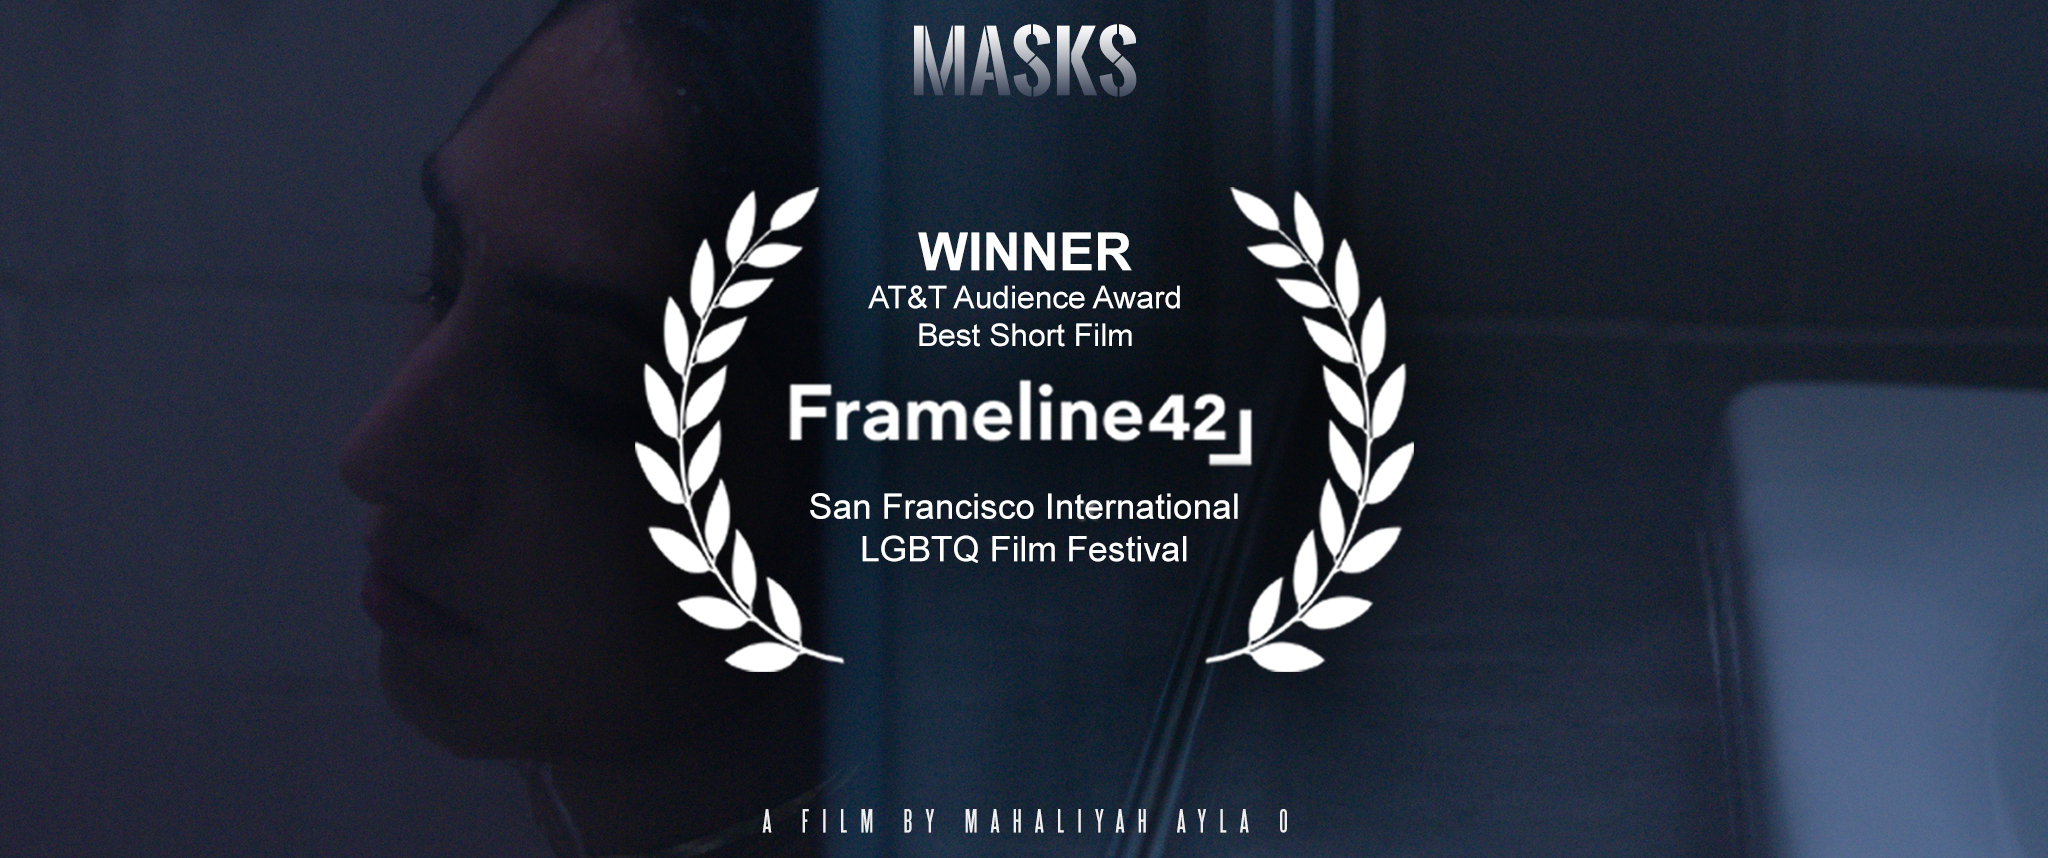 MASKS_Frameline_AT&T Audience Award for Best Short Film Win (1).jpg